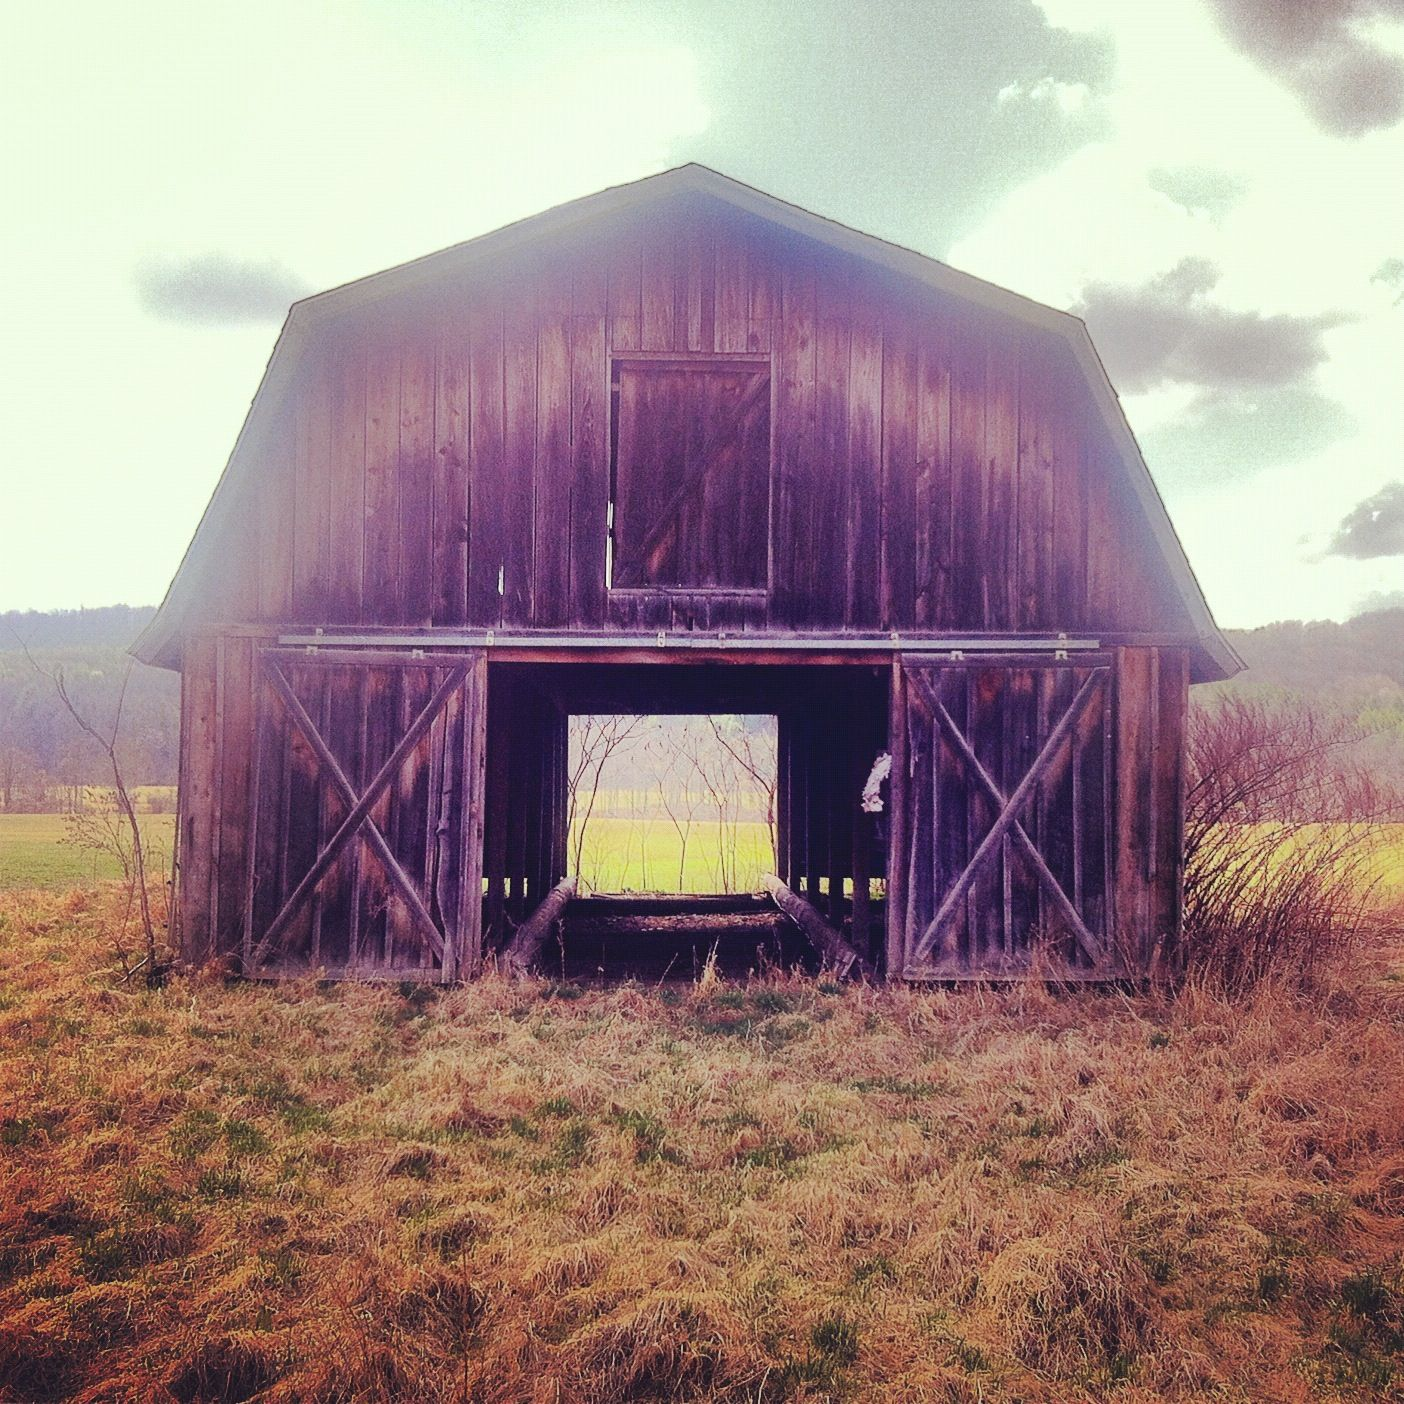 Abandoned: This Is The Way Through. Upstate NY 2012 (With